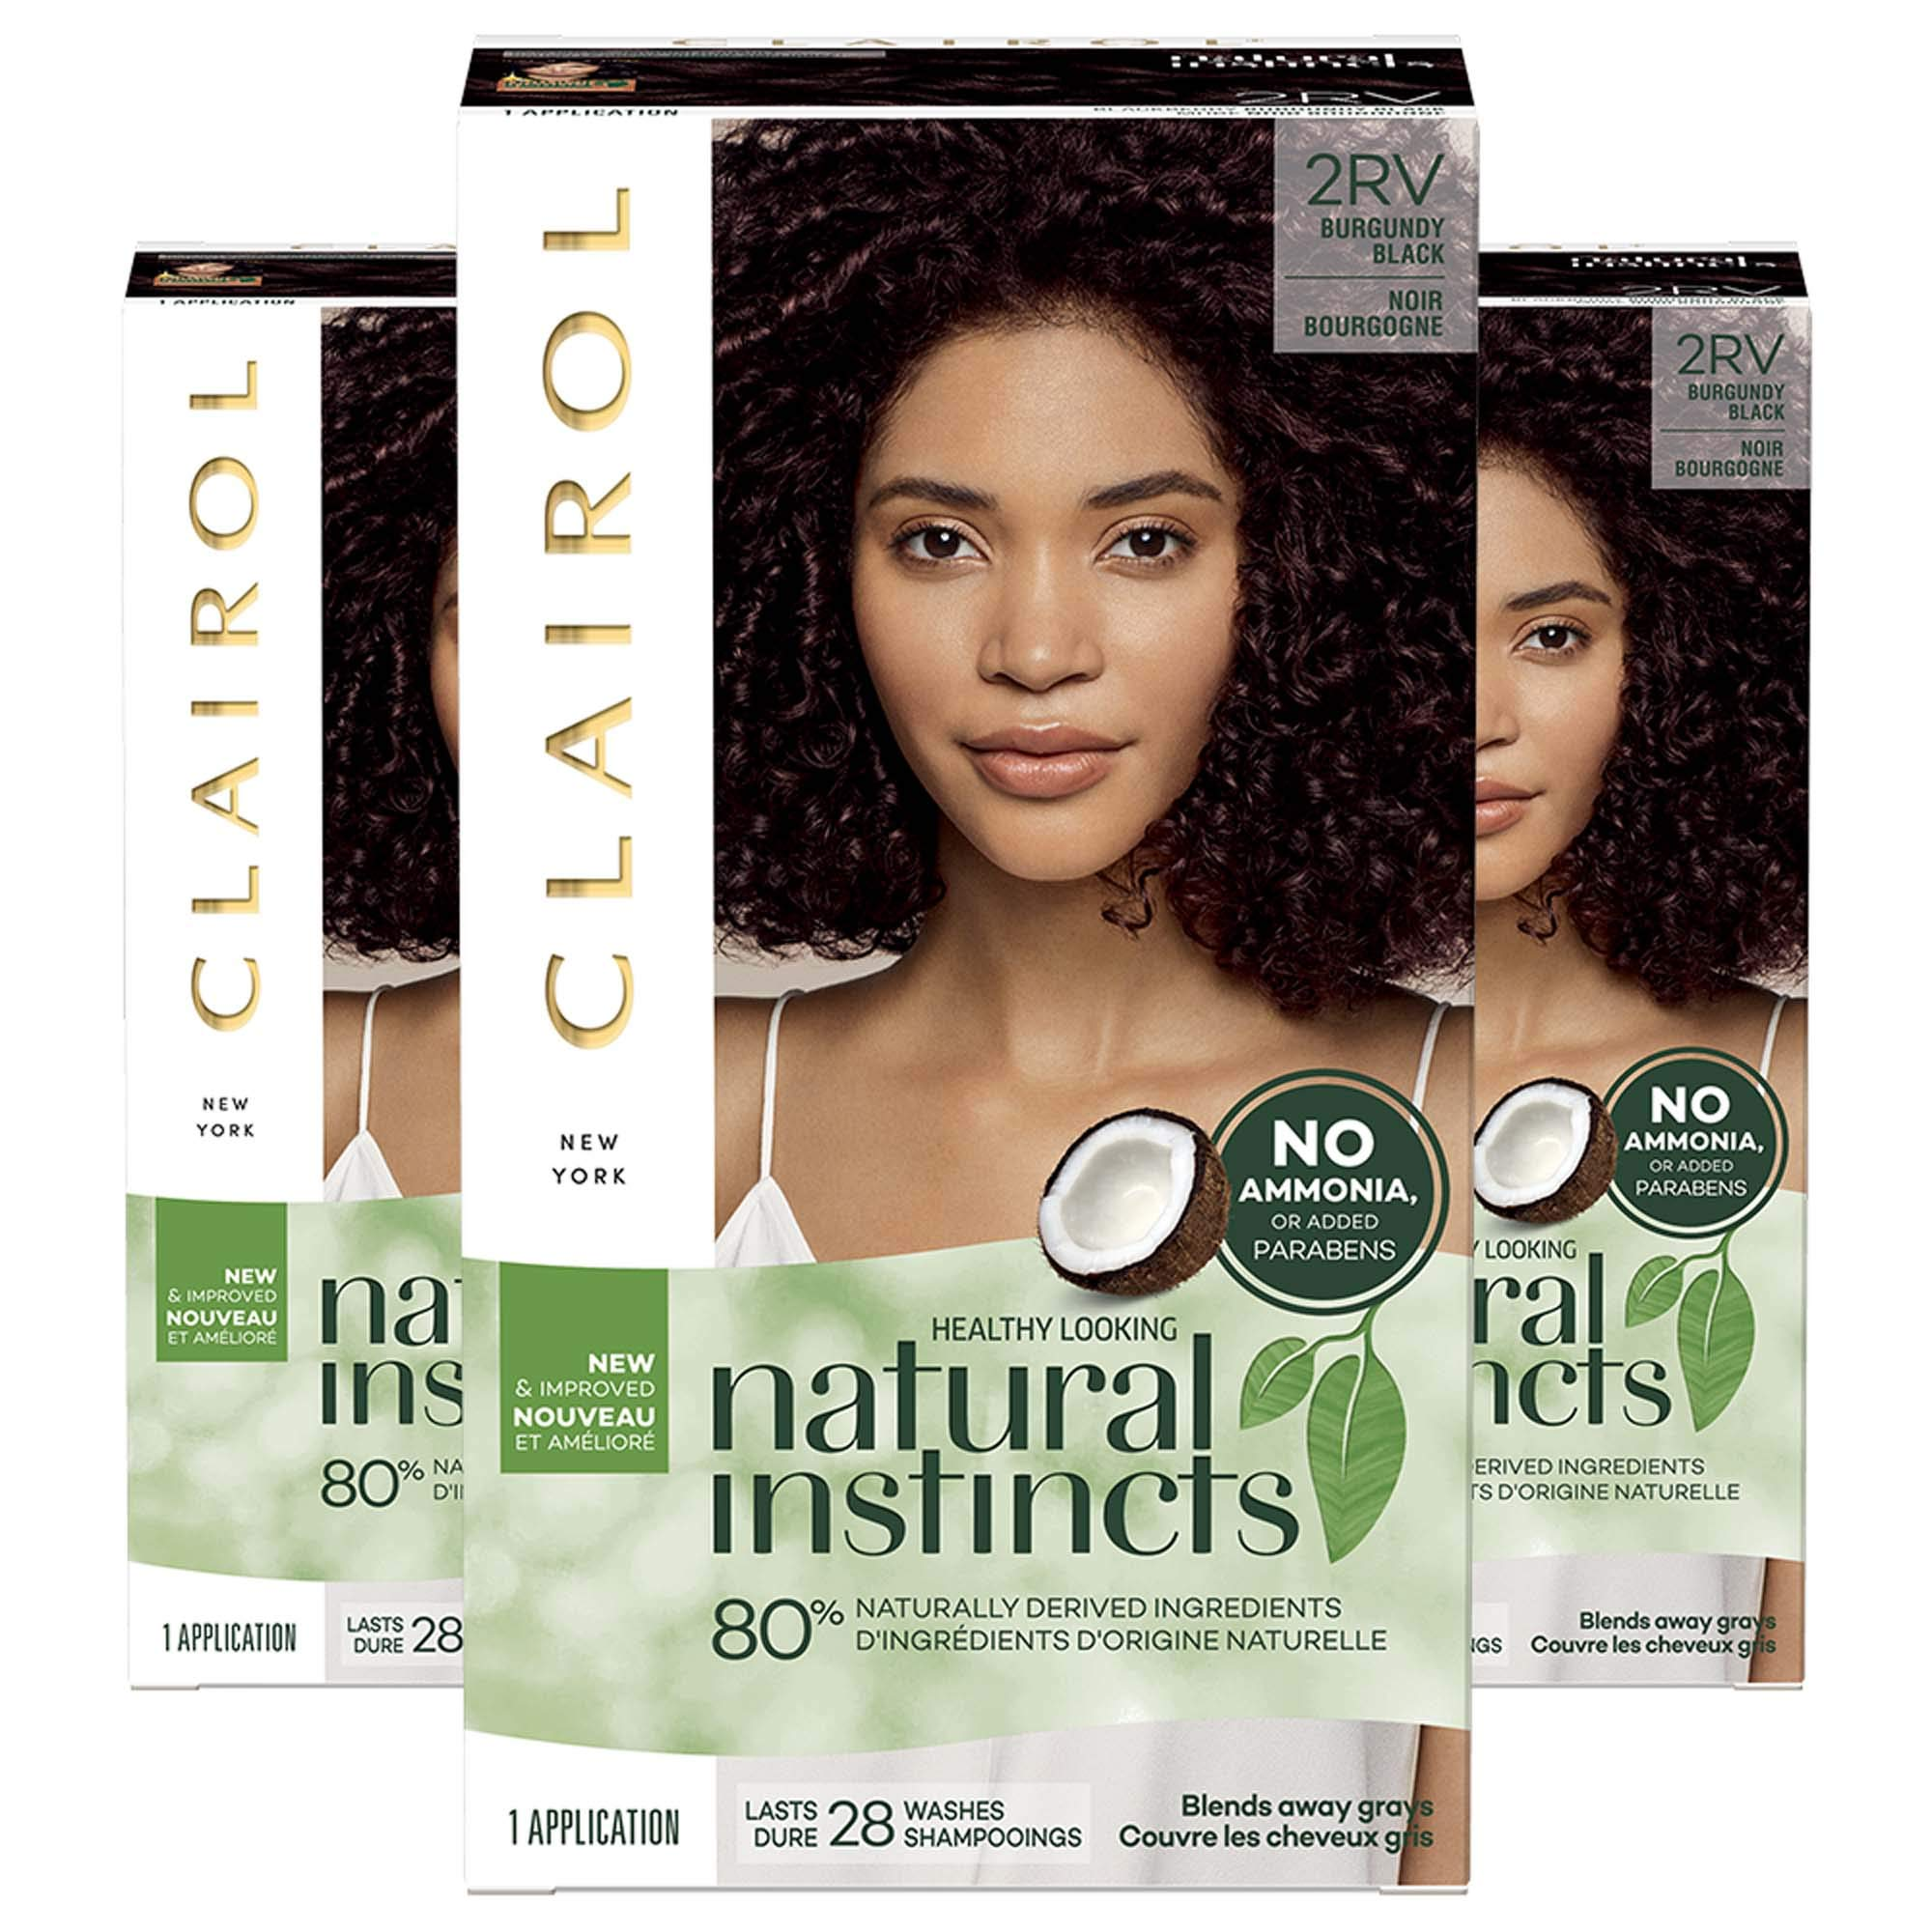 Clairol Natural Instincts, 2RV Burgundy Black, Blackberry, 3 Count by Clairol